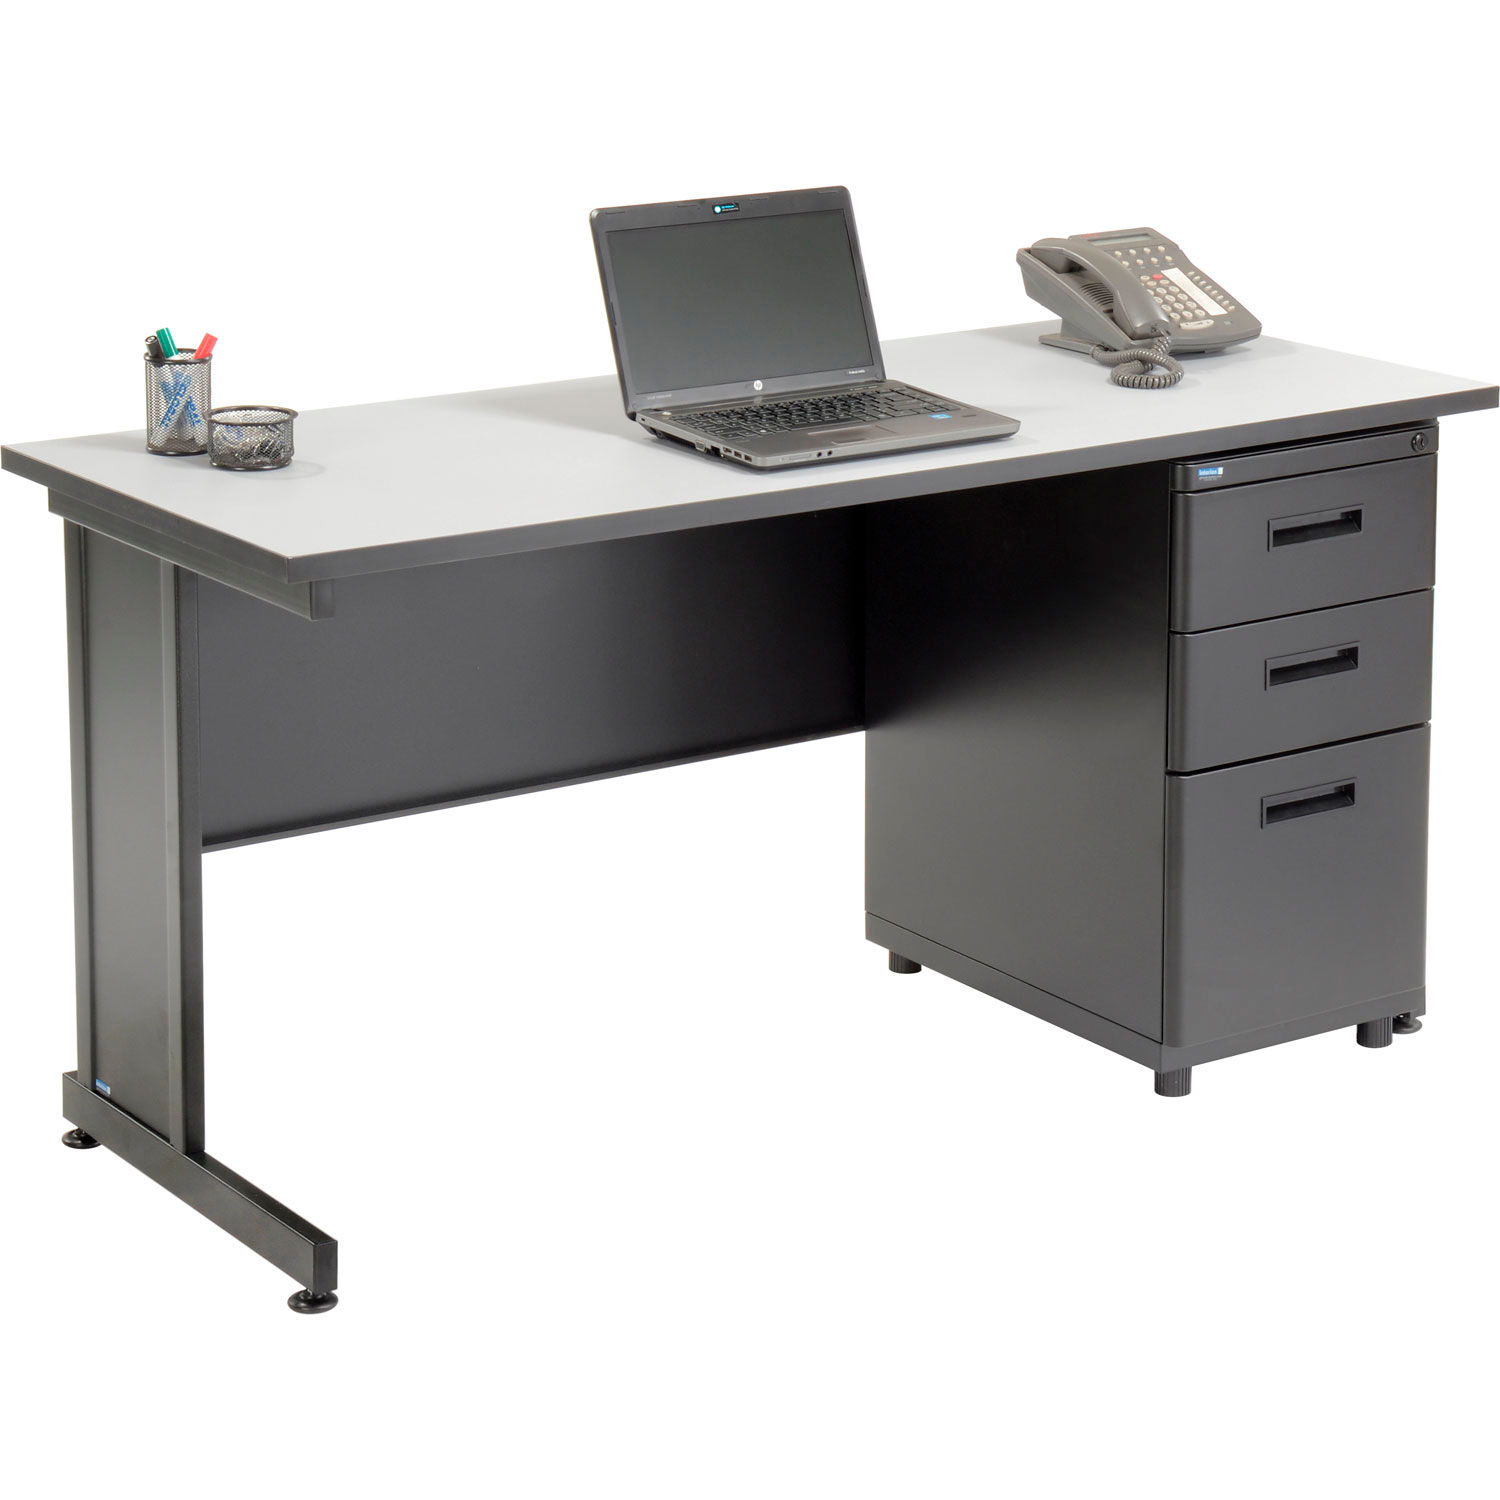 Desks Office Collections Office Desk With 3 Drawers